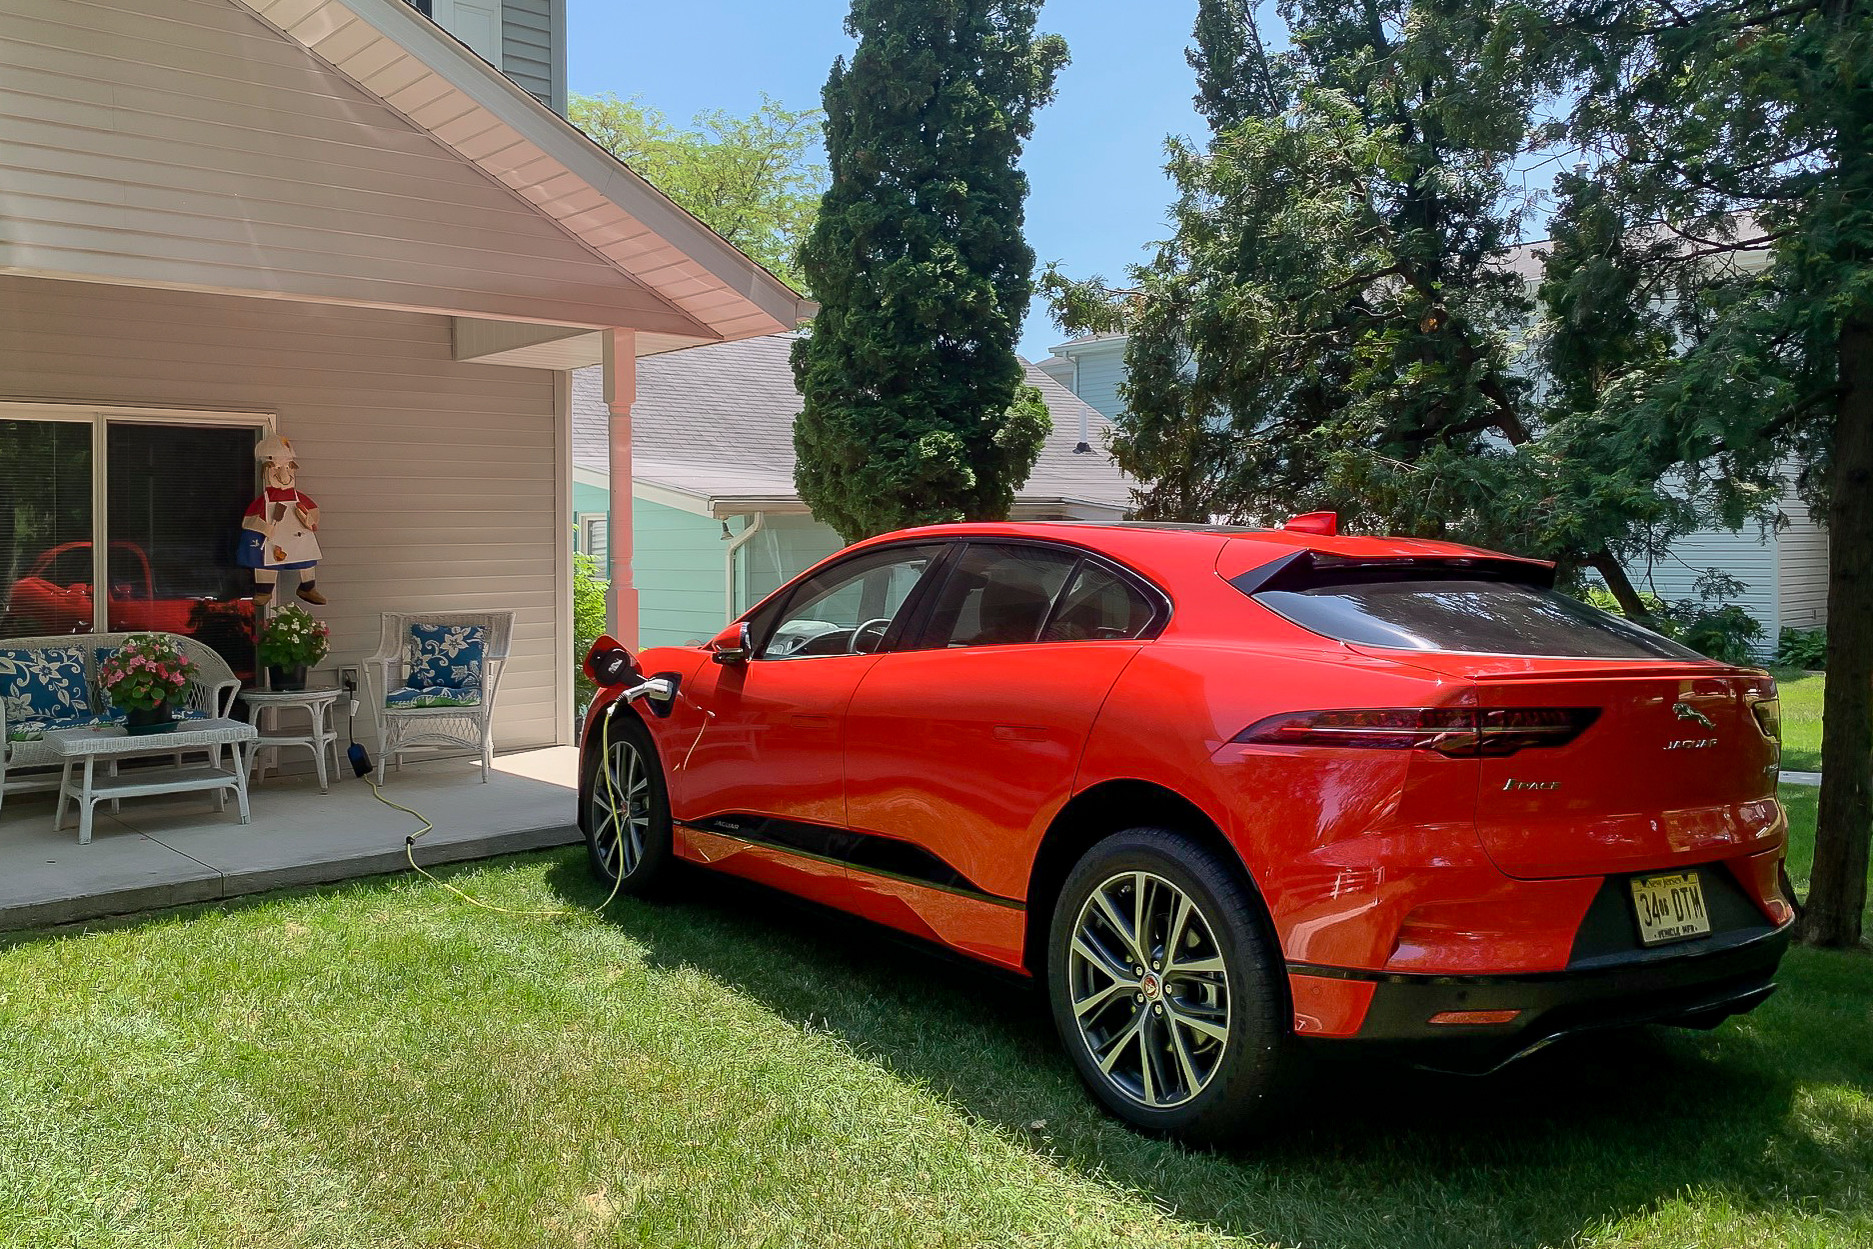 jaguar-i-pace-2019-03-angle--charging-station--exterior--rear--red.jpg